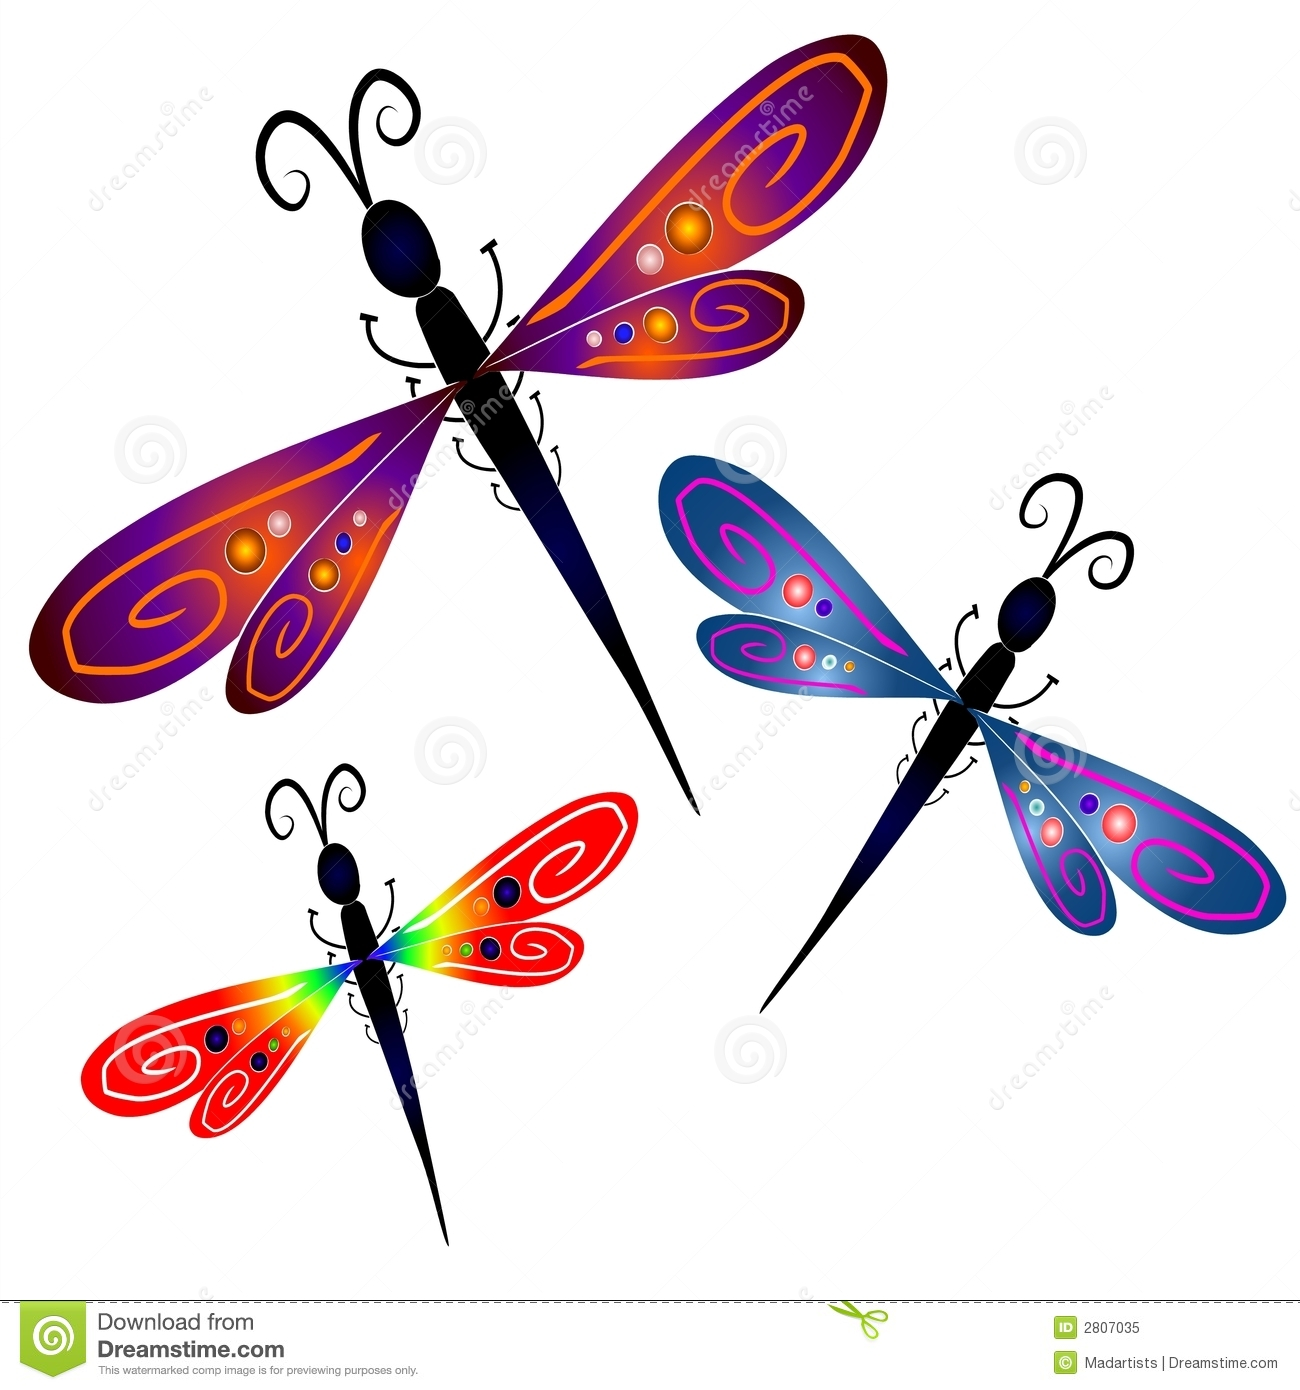 abstract dragonfly clip art stock illustration illustration of rh dreamstime com royalty free icons and clipart stock images royalty free clipart images for teachers